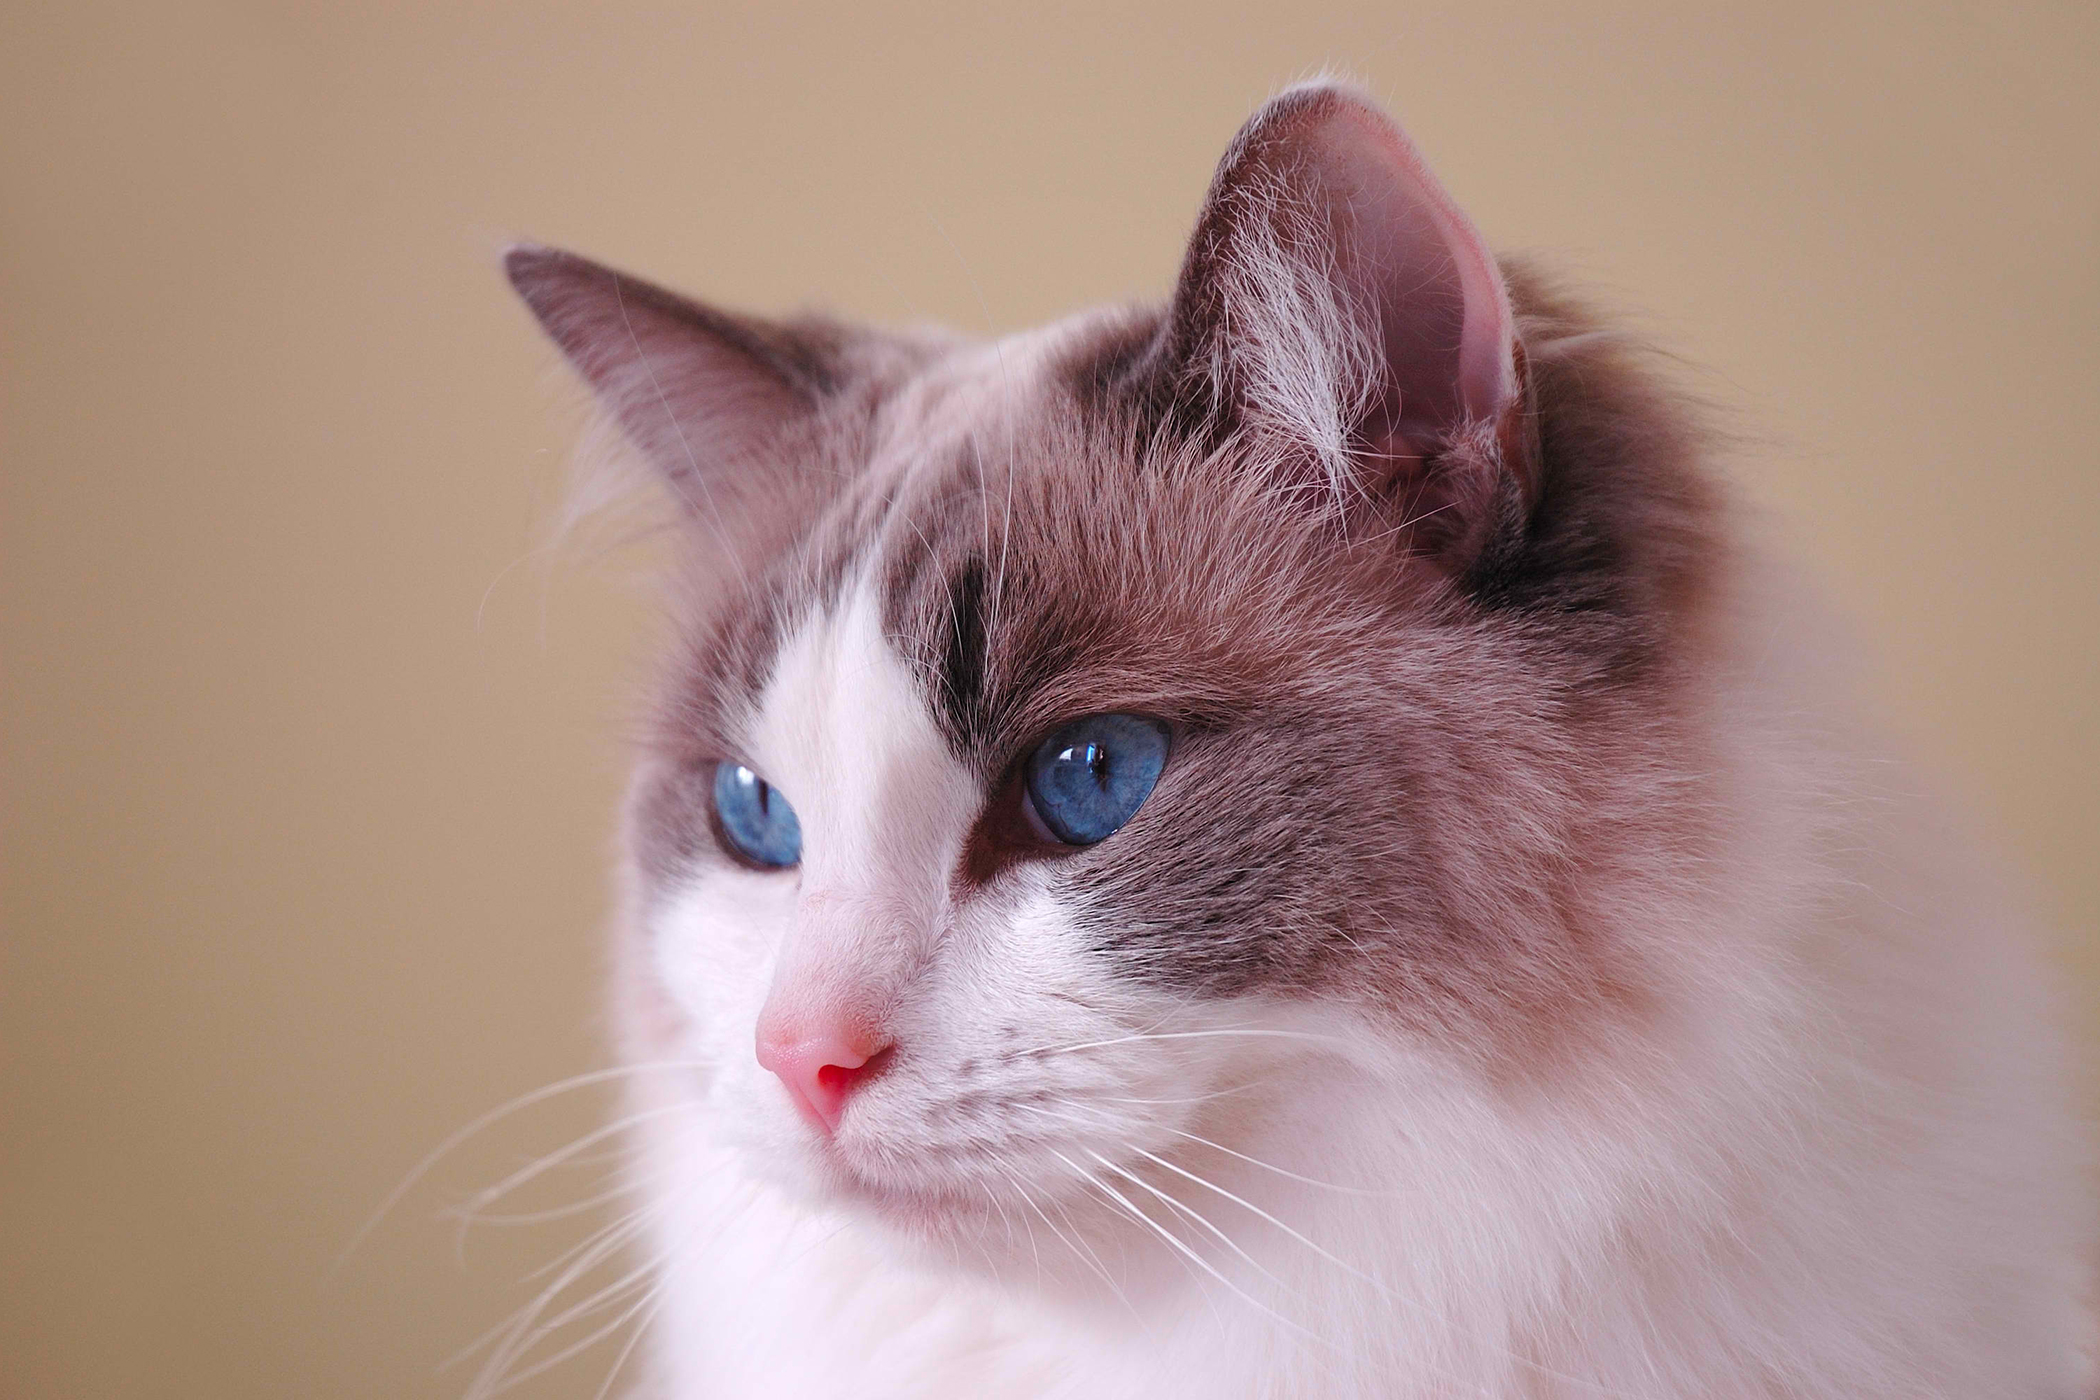 Polycystic Kidney Disease in Cats